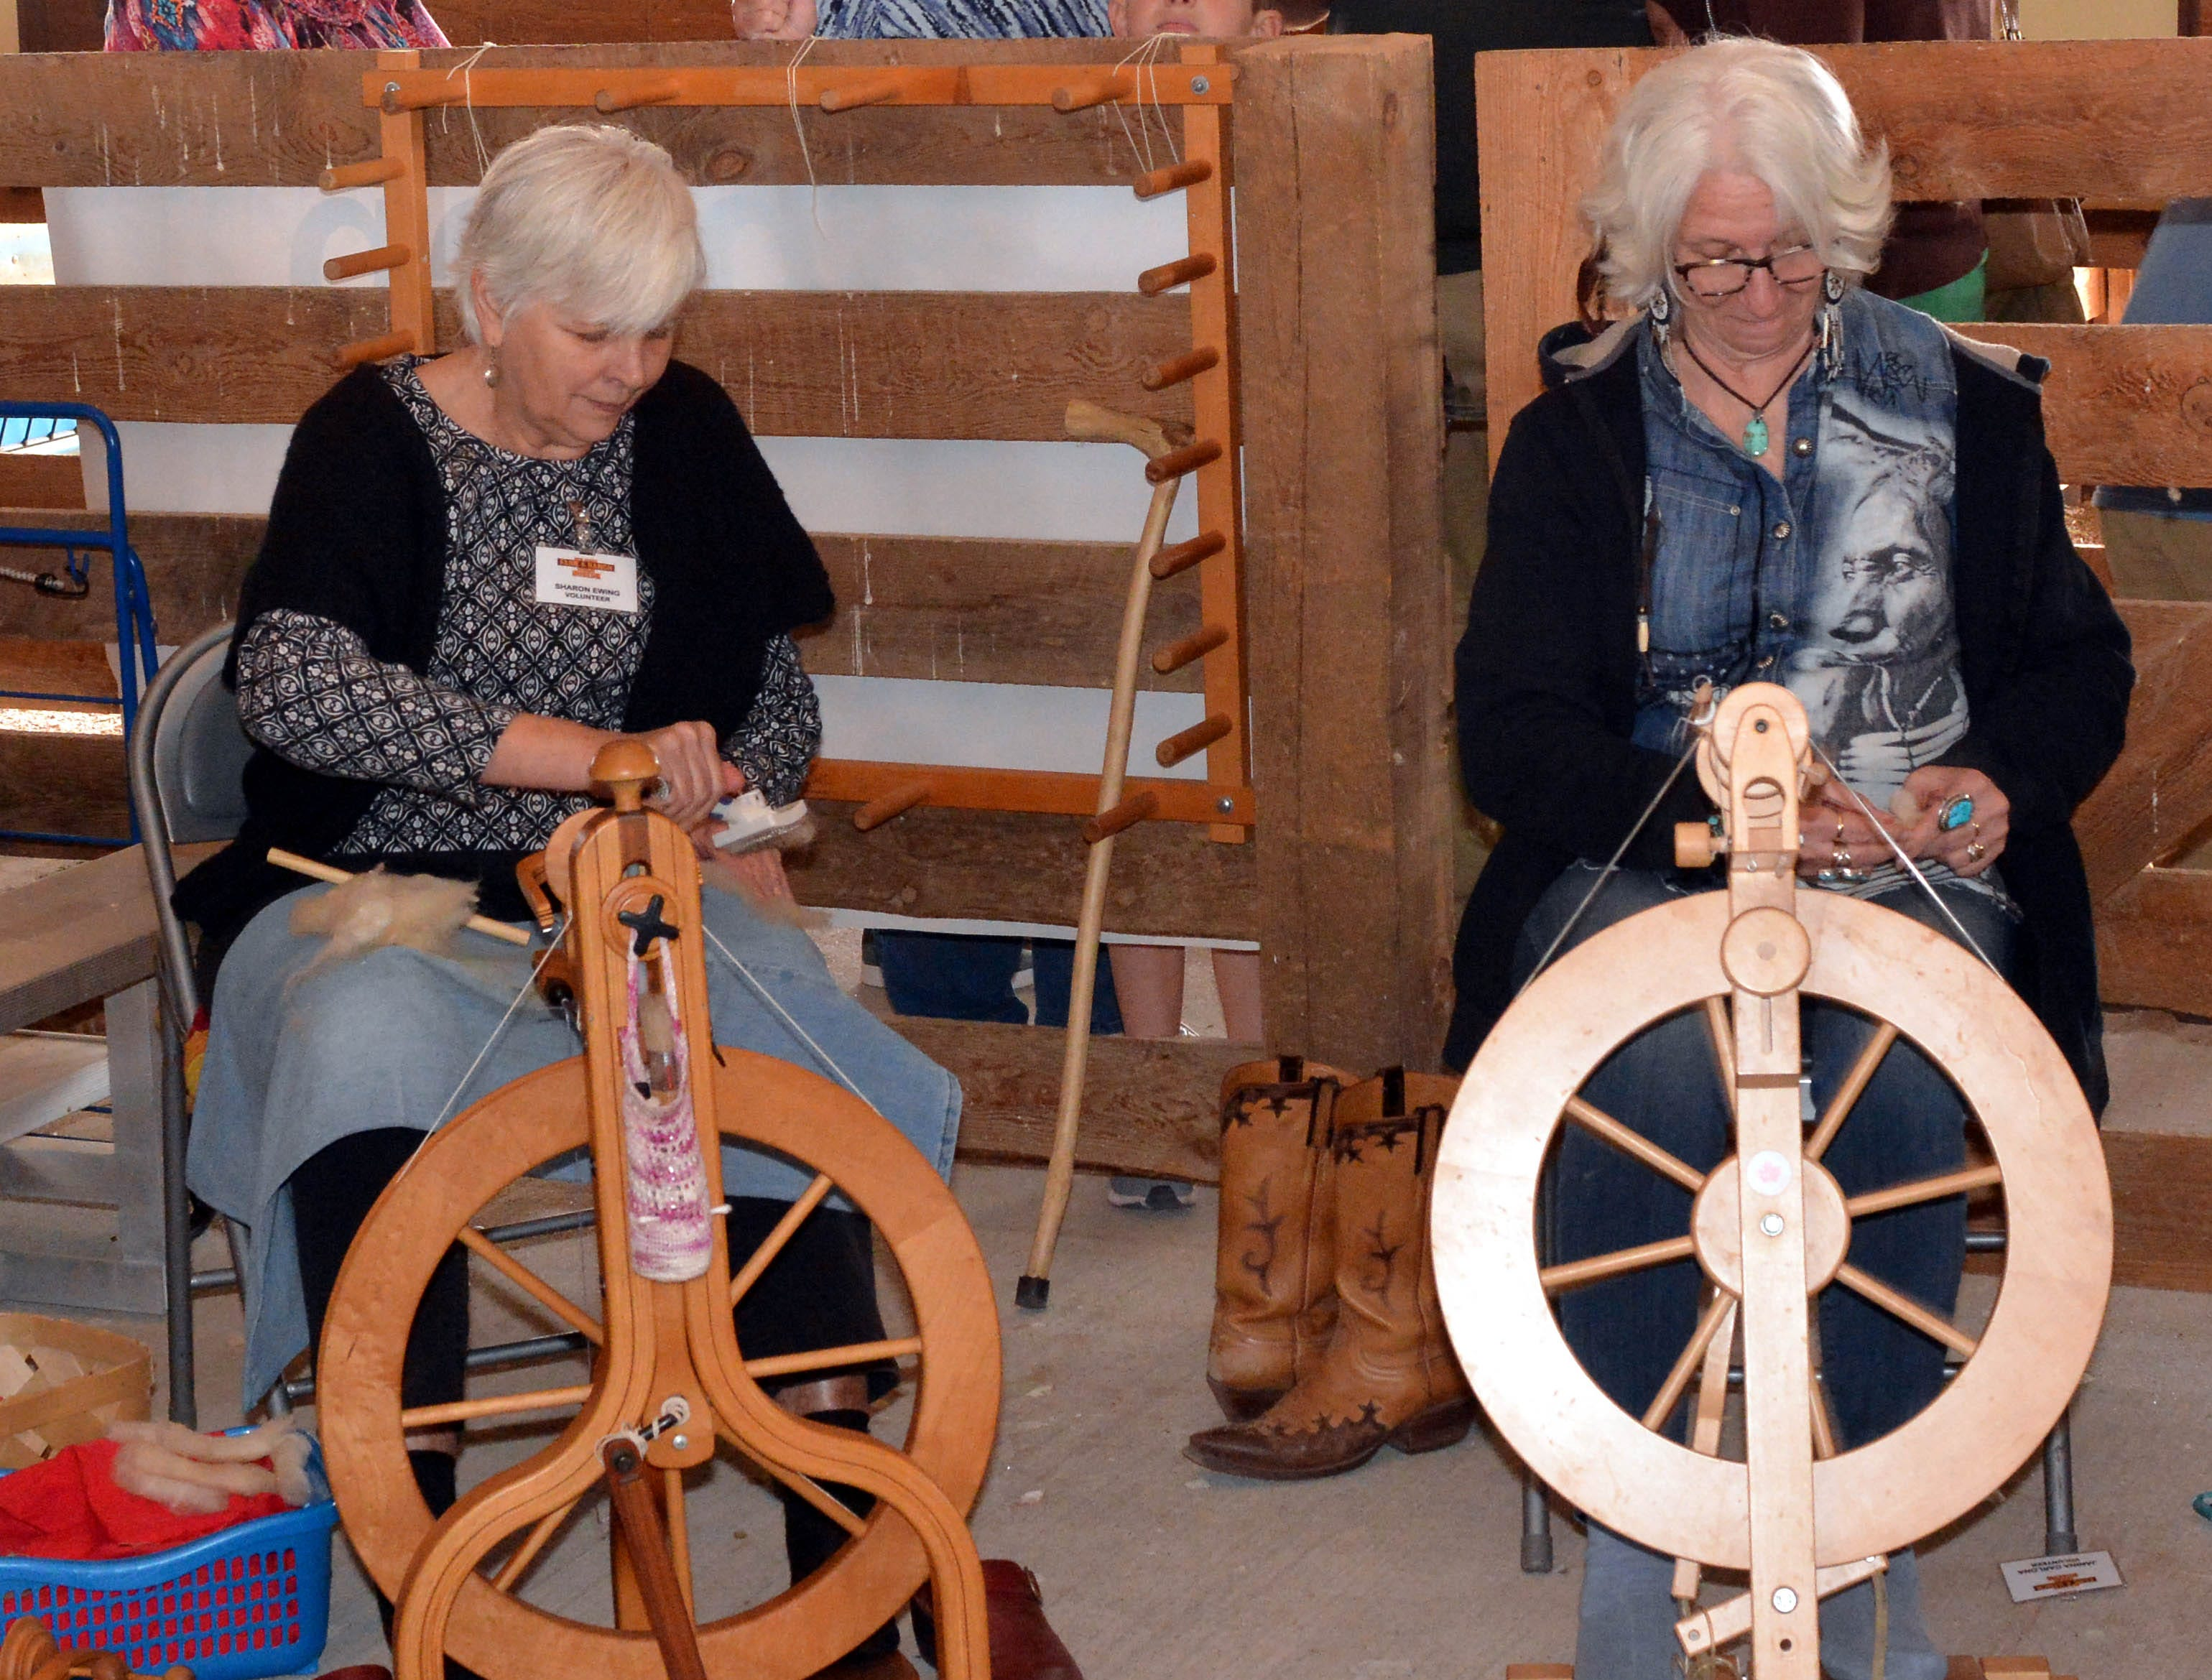 Sharon Ewing, left, and Janina Tarlona spin wool into yarn at the 20th annual Cowboy Days held Saturday, March 2, 2019, at the New Mexico Farm and Ranch Heritage Museum.